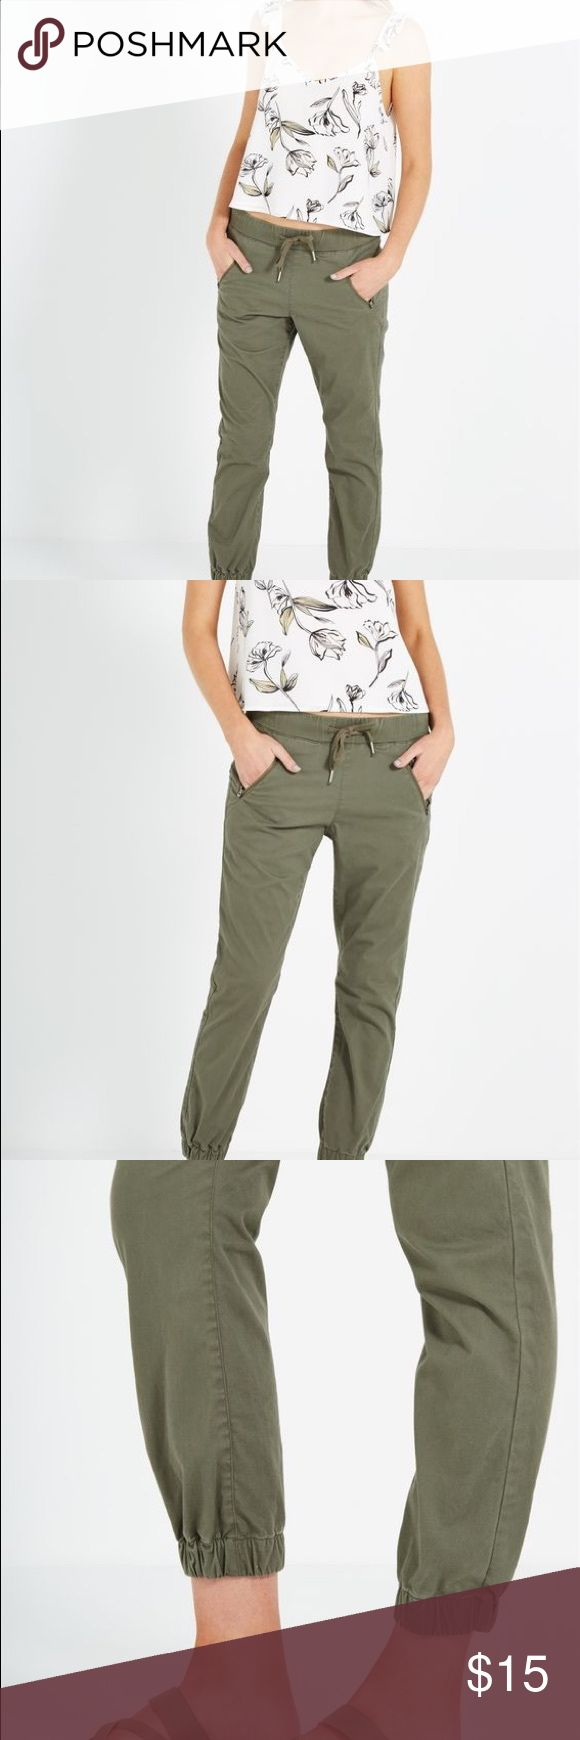 Olive Chino Joggers Cuffed chino jogger pants. Good condition. Last picture shows actual item and color. Color is darker than the first 3 pictures. Pants Track Pants & Joggers